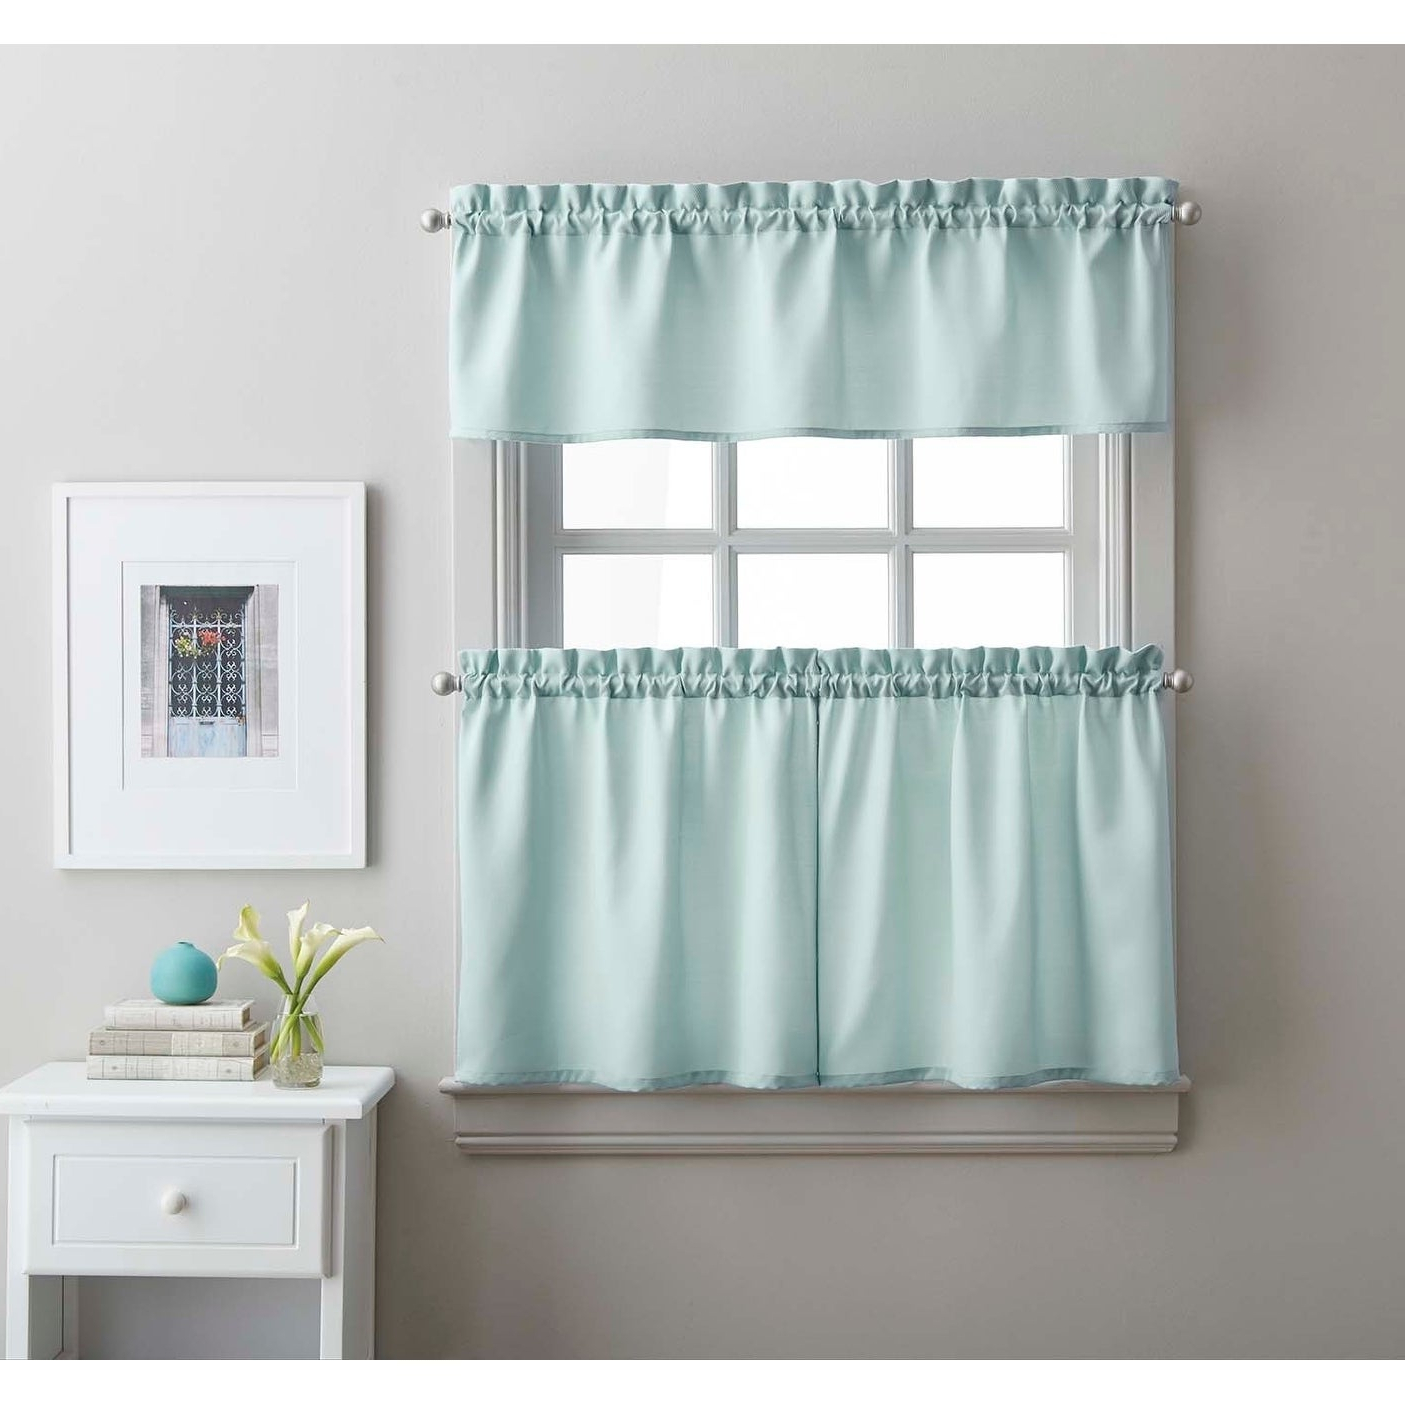 Twill 3 Piece Kitchen Curtain Tier Set In Preferred Solid Microfiber 3 Piece Kitchen Curtain Valance And Tiers Sets (View 19 of 20)